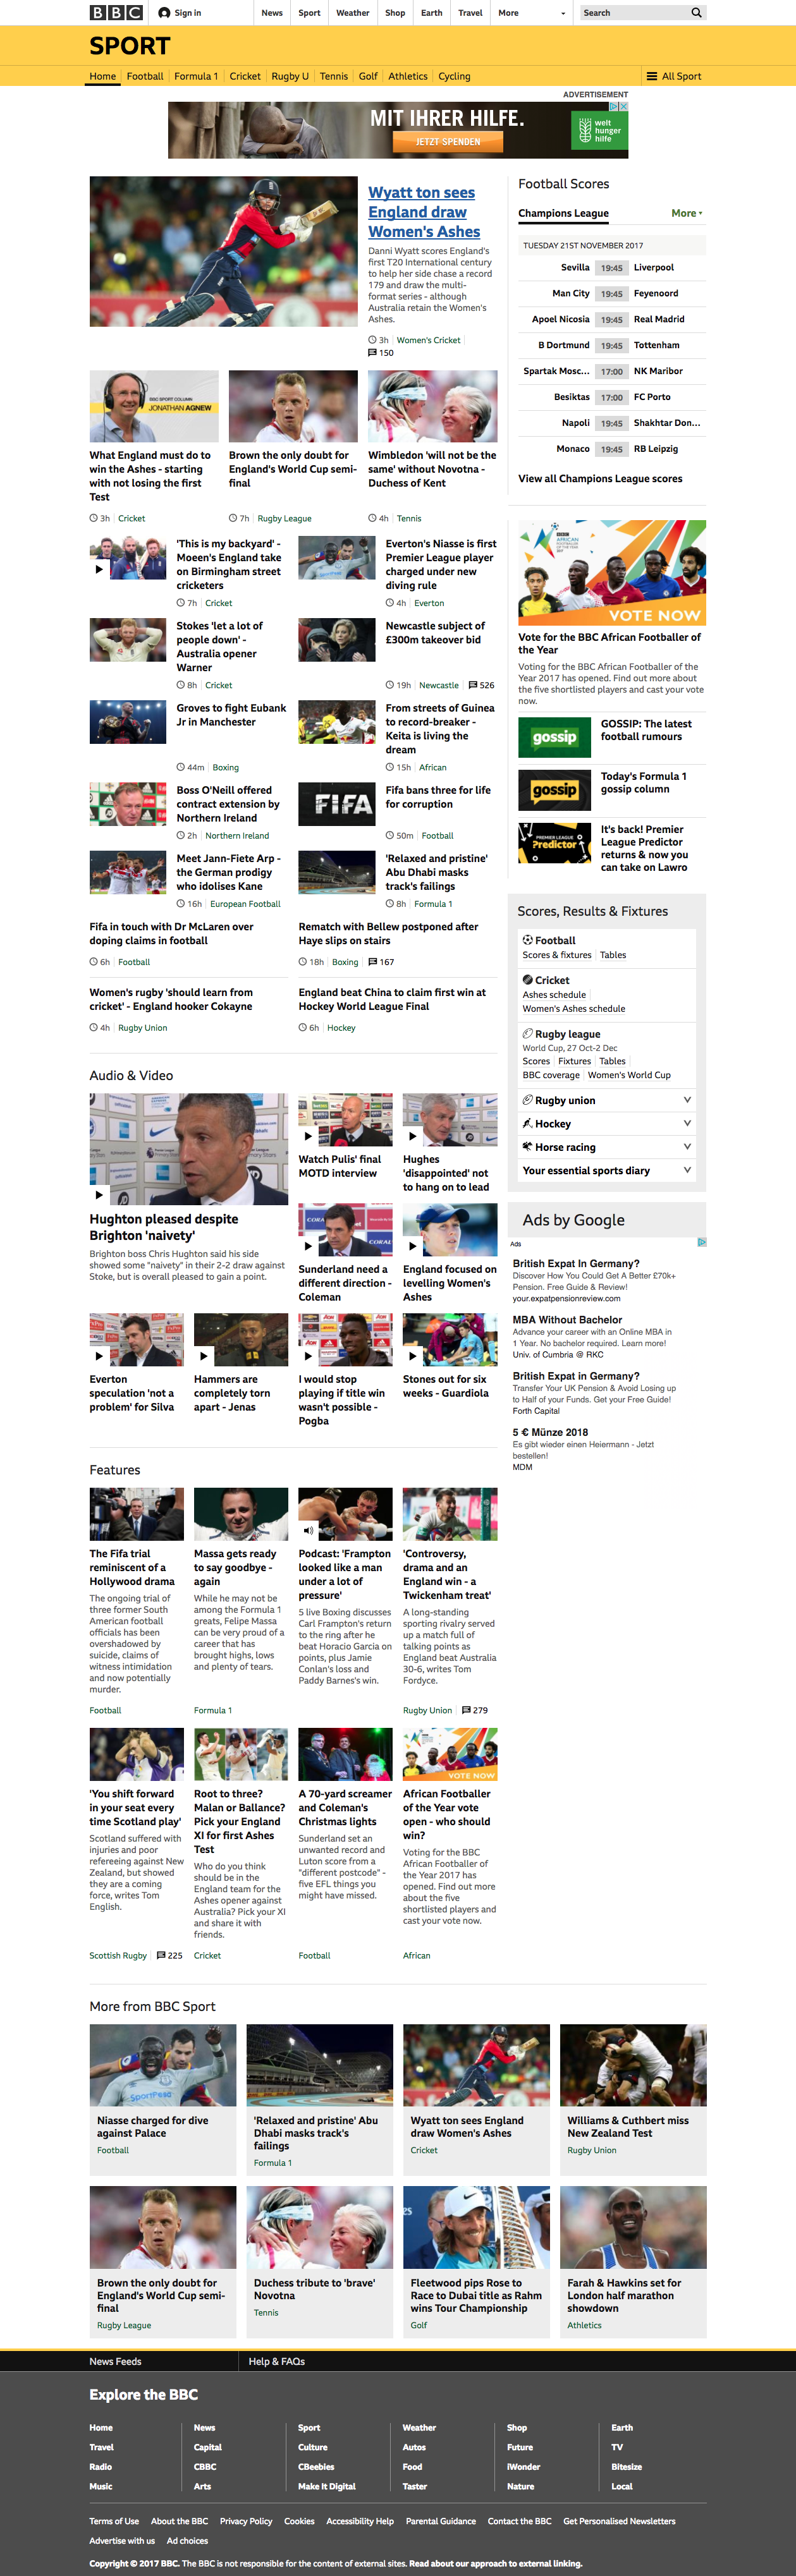 full-page-screenshot-of-bbc-website